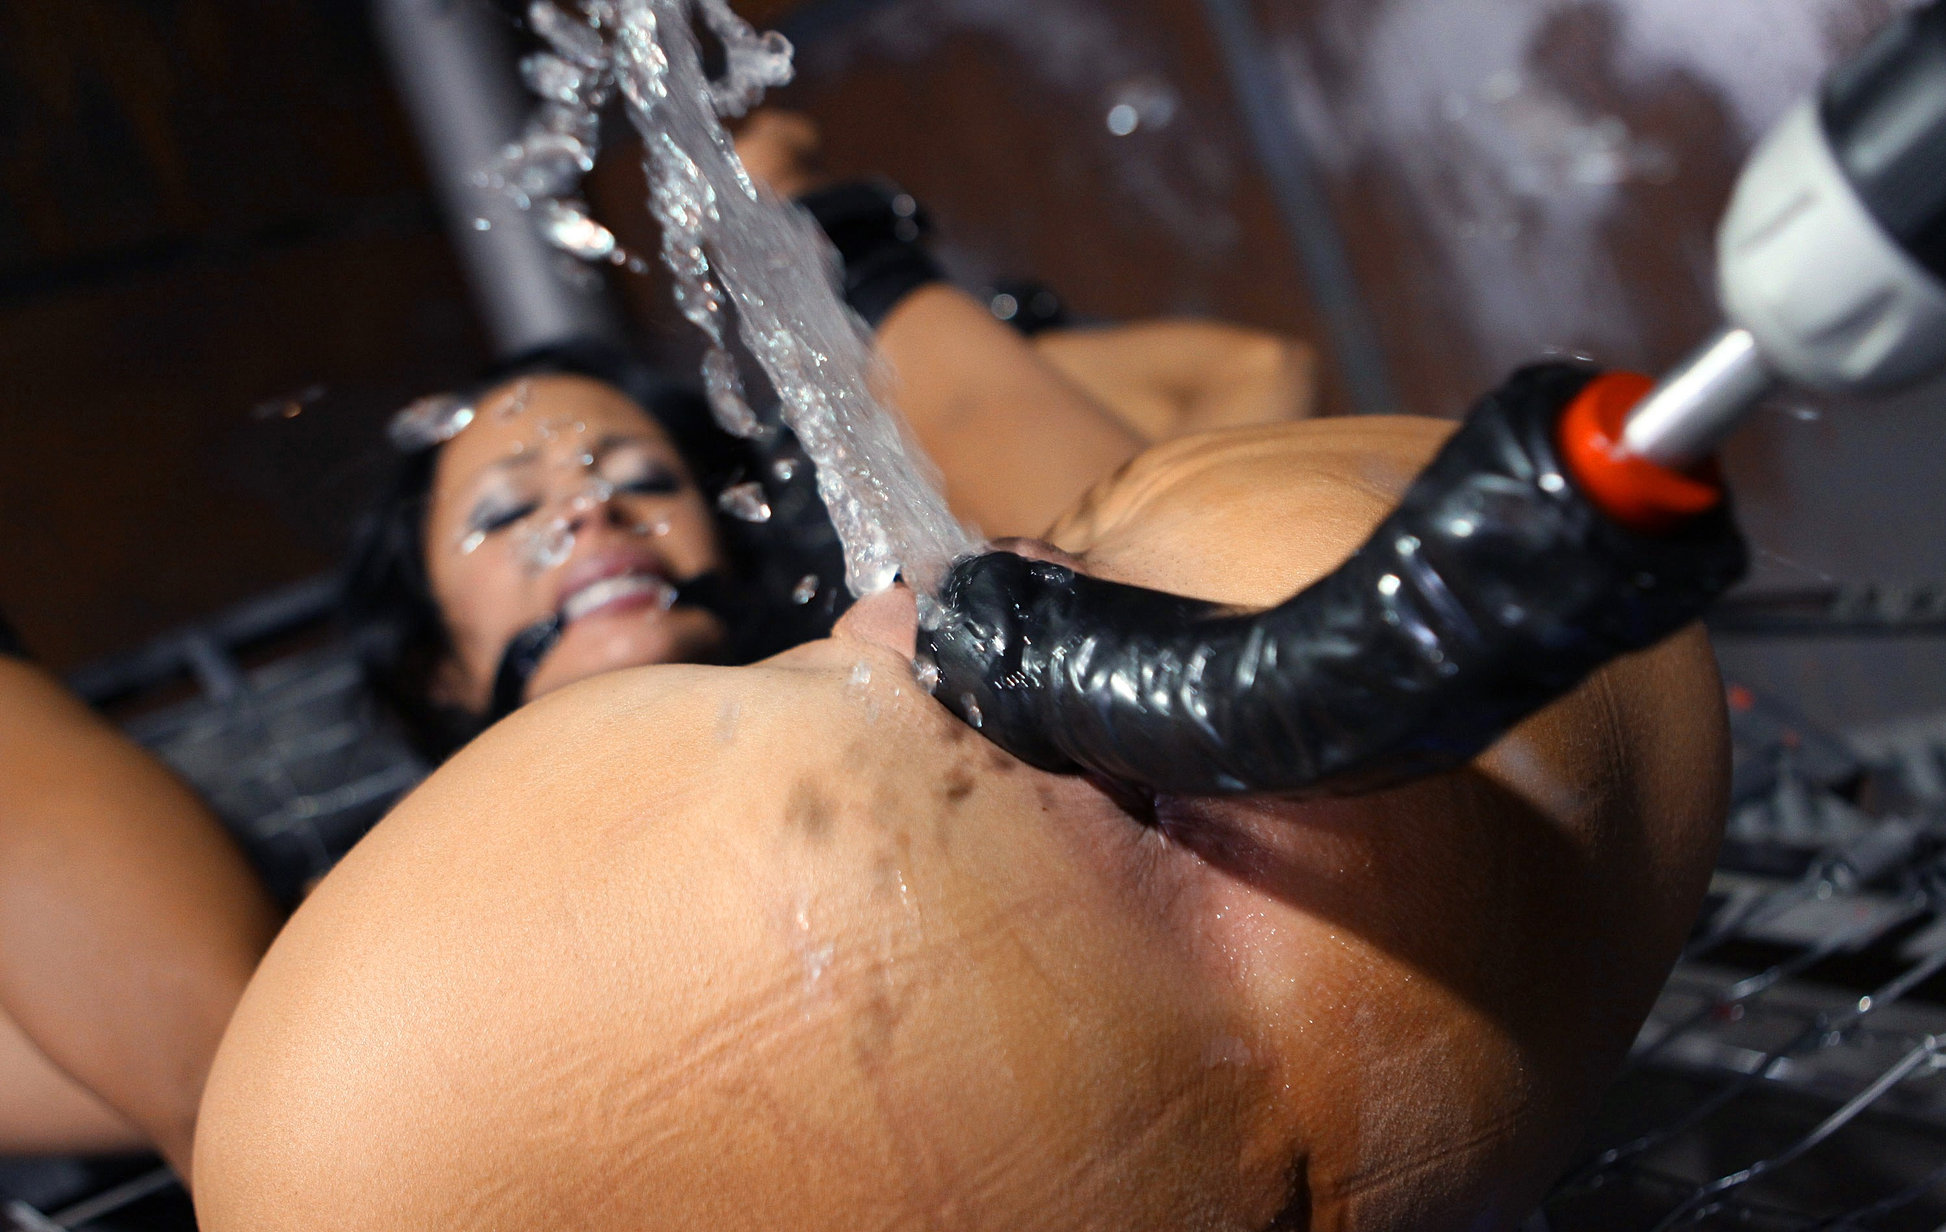 bdsm-skvirting-video